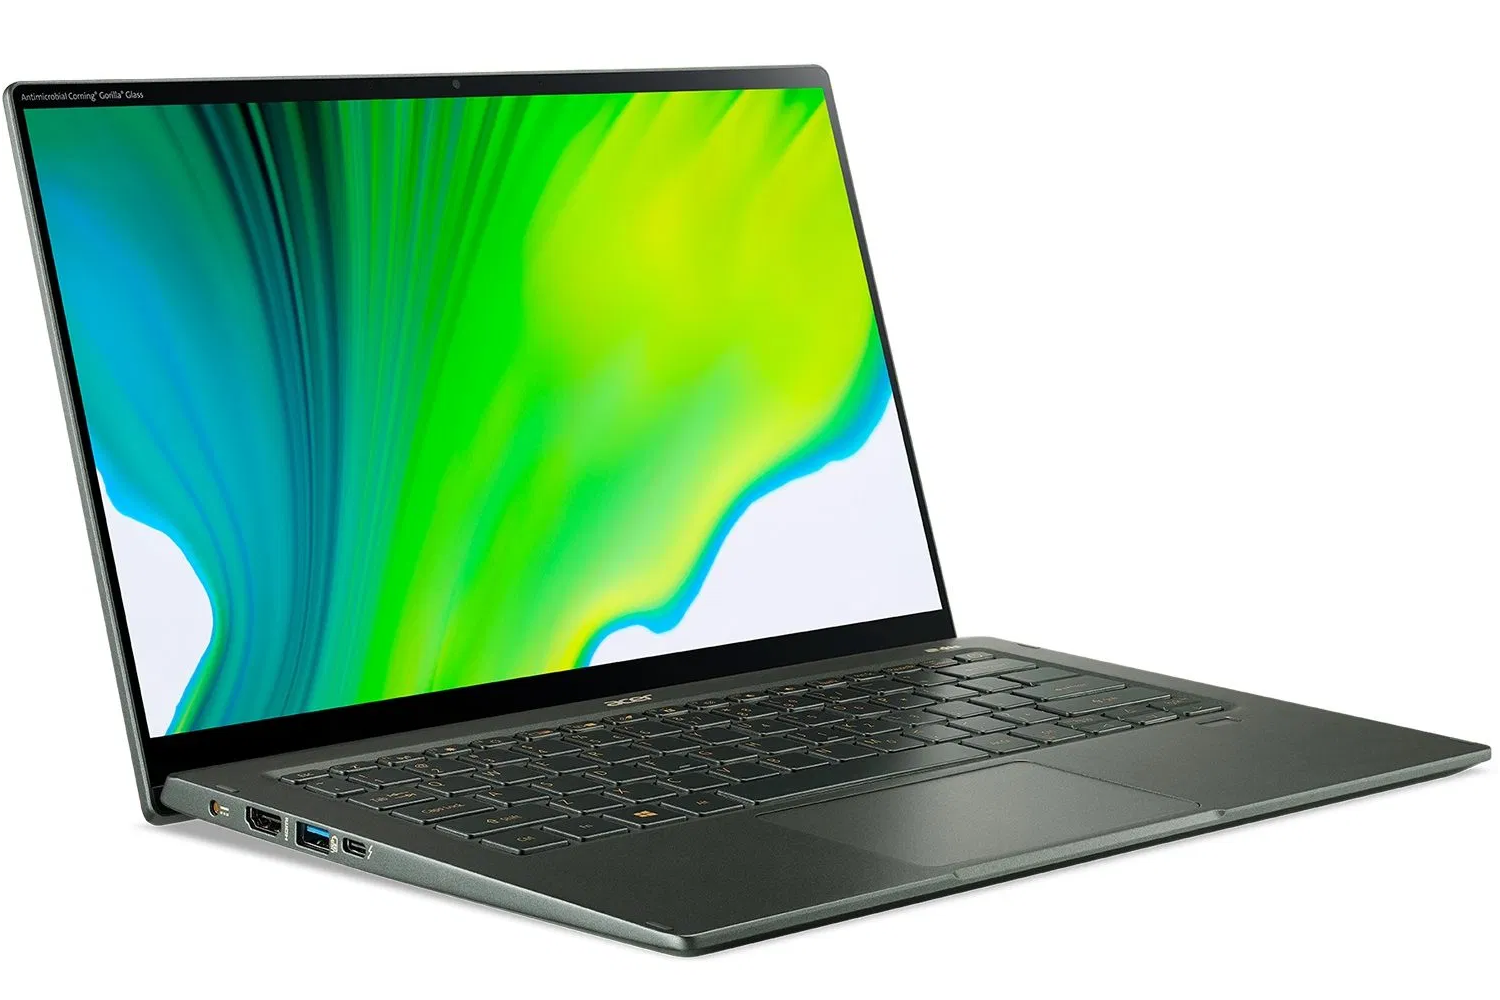 Top 5 reasons to BUY or NOT buy the Acer Swift 5 Pro (SF514-55GT)